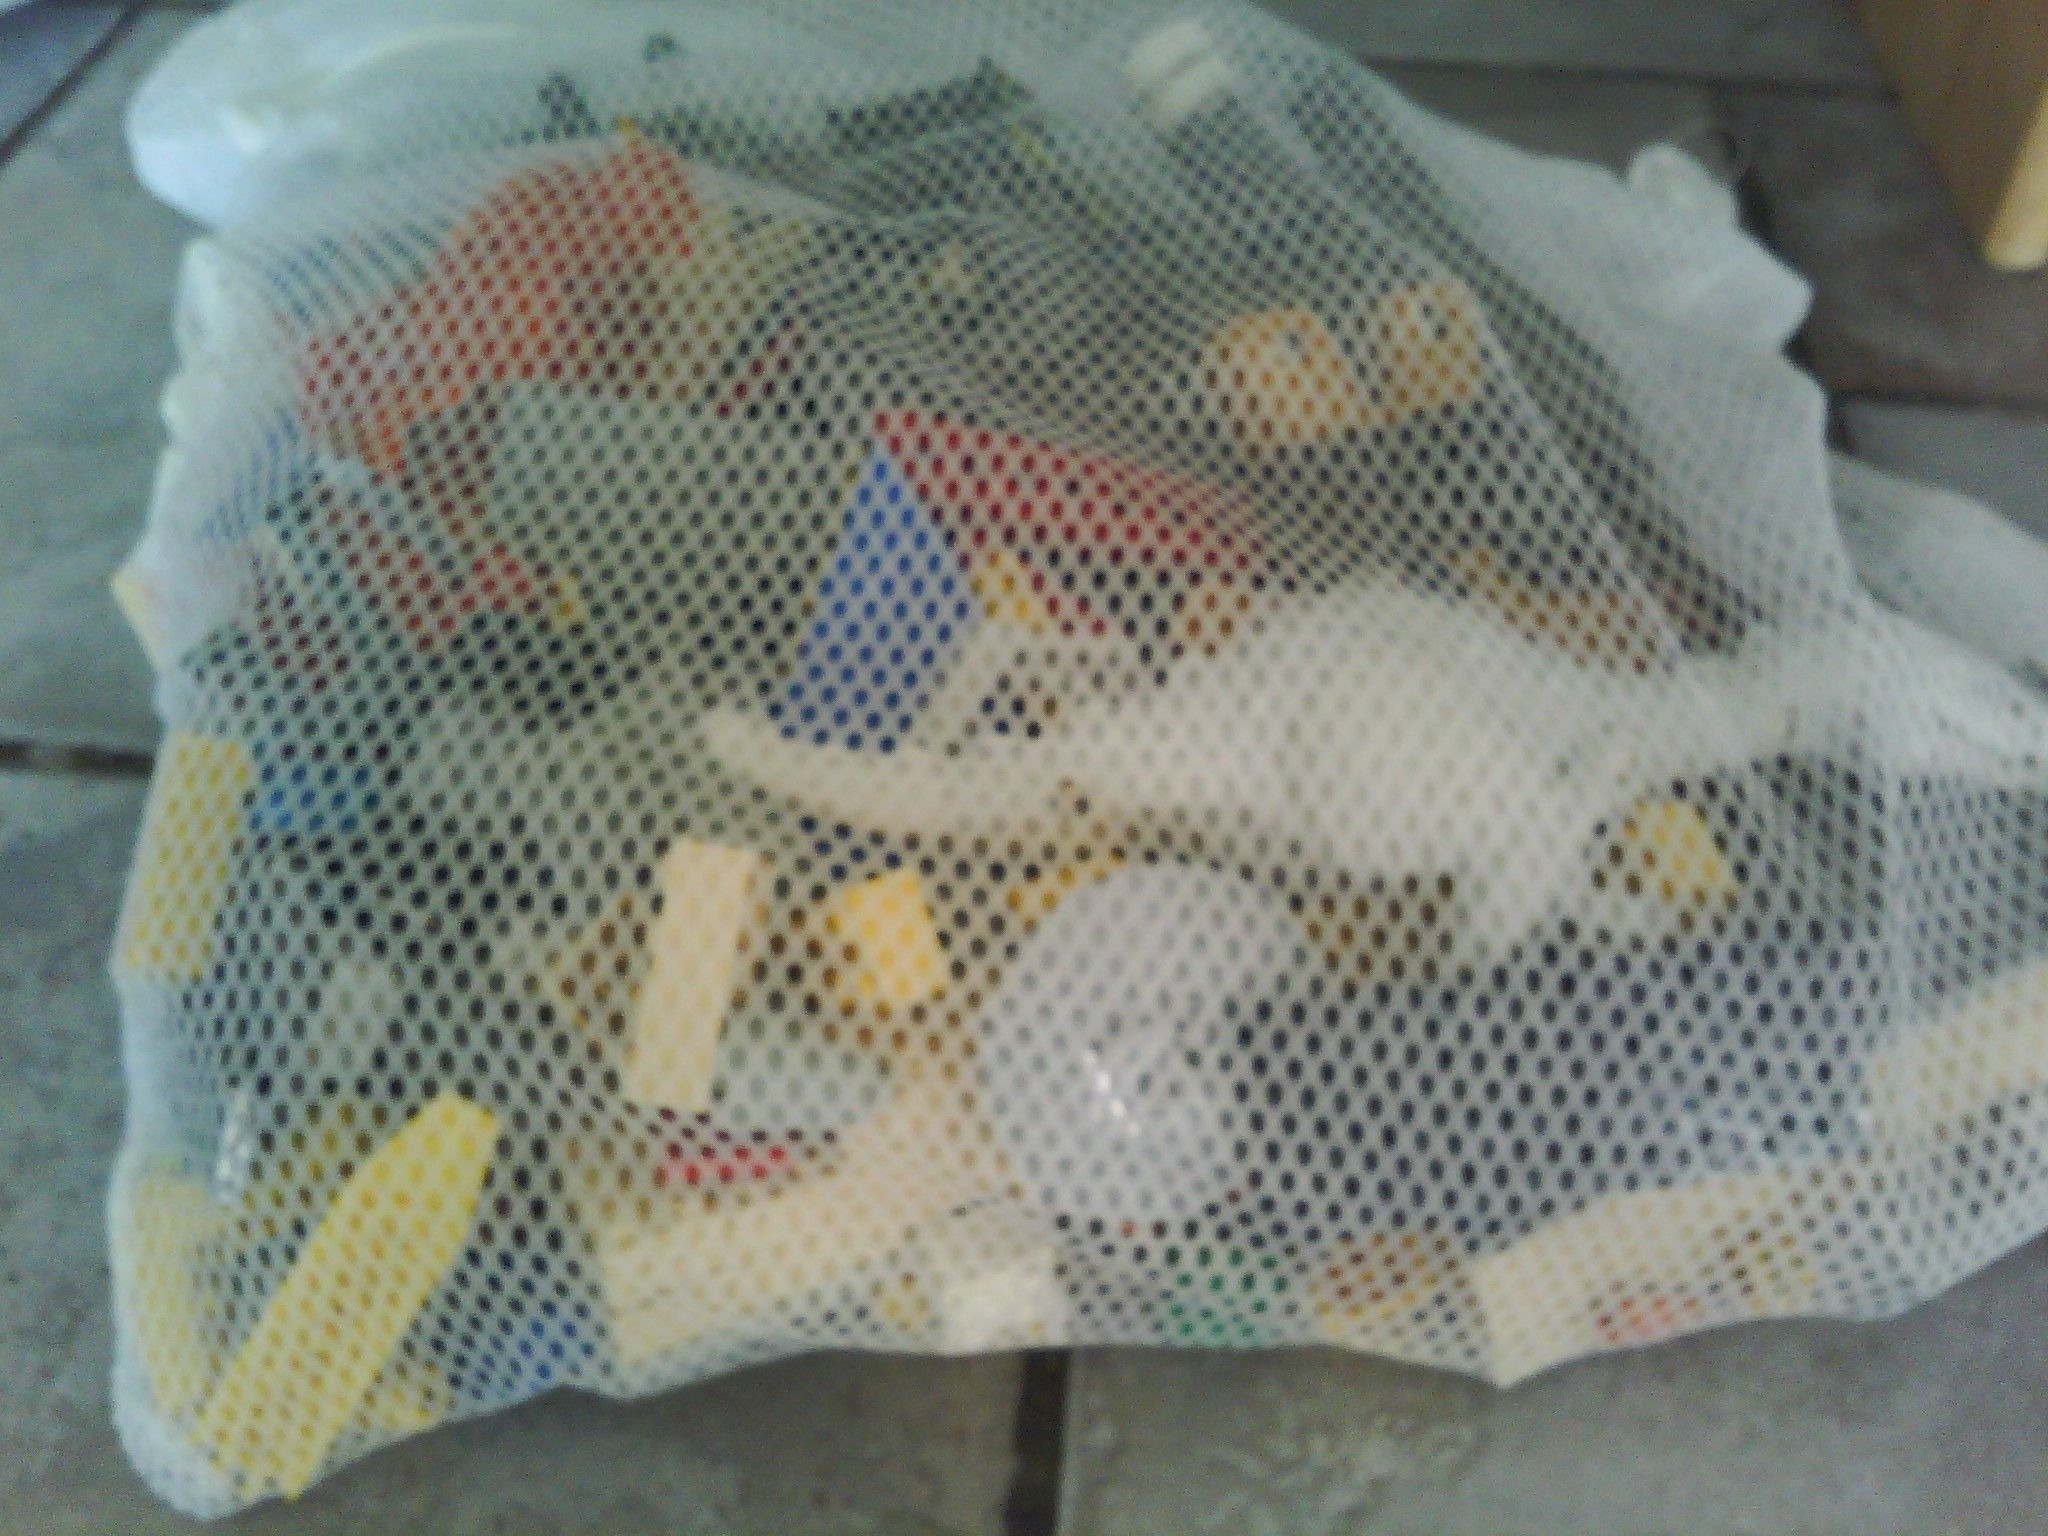 How To Easily Clean Legos And Small Toys Fill Laundry Mesh Bag